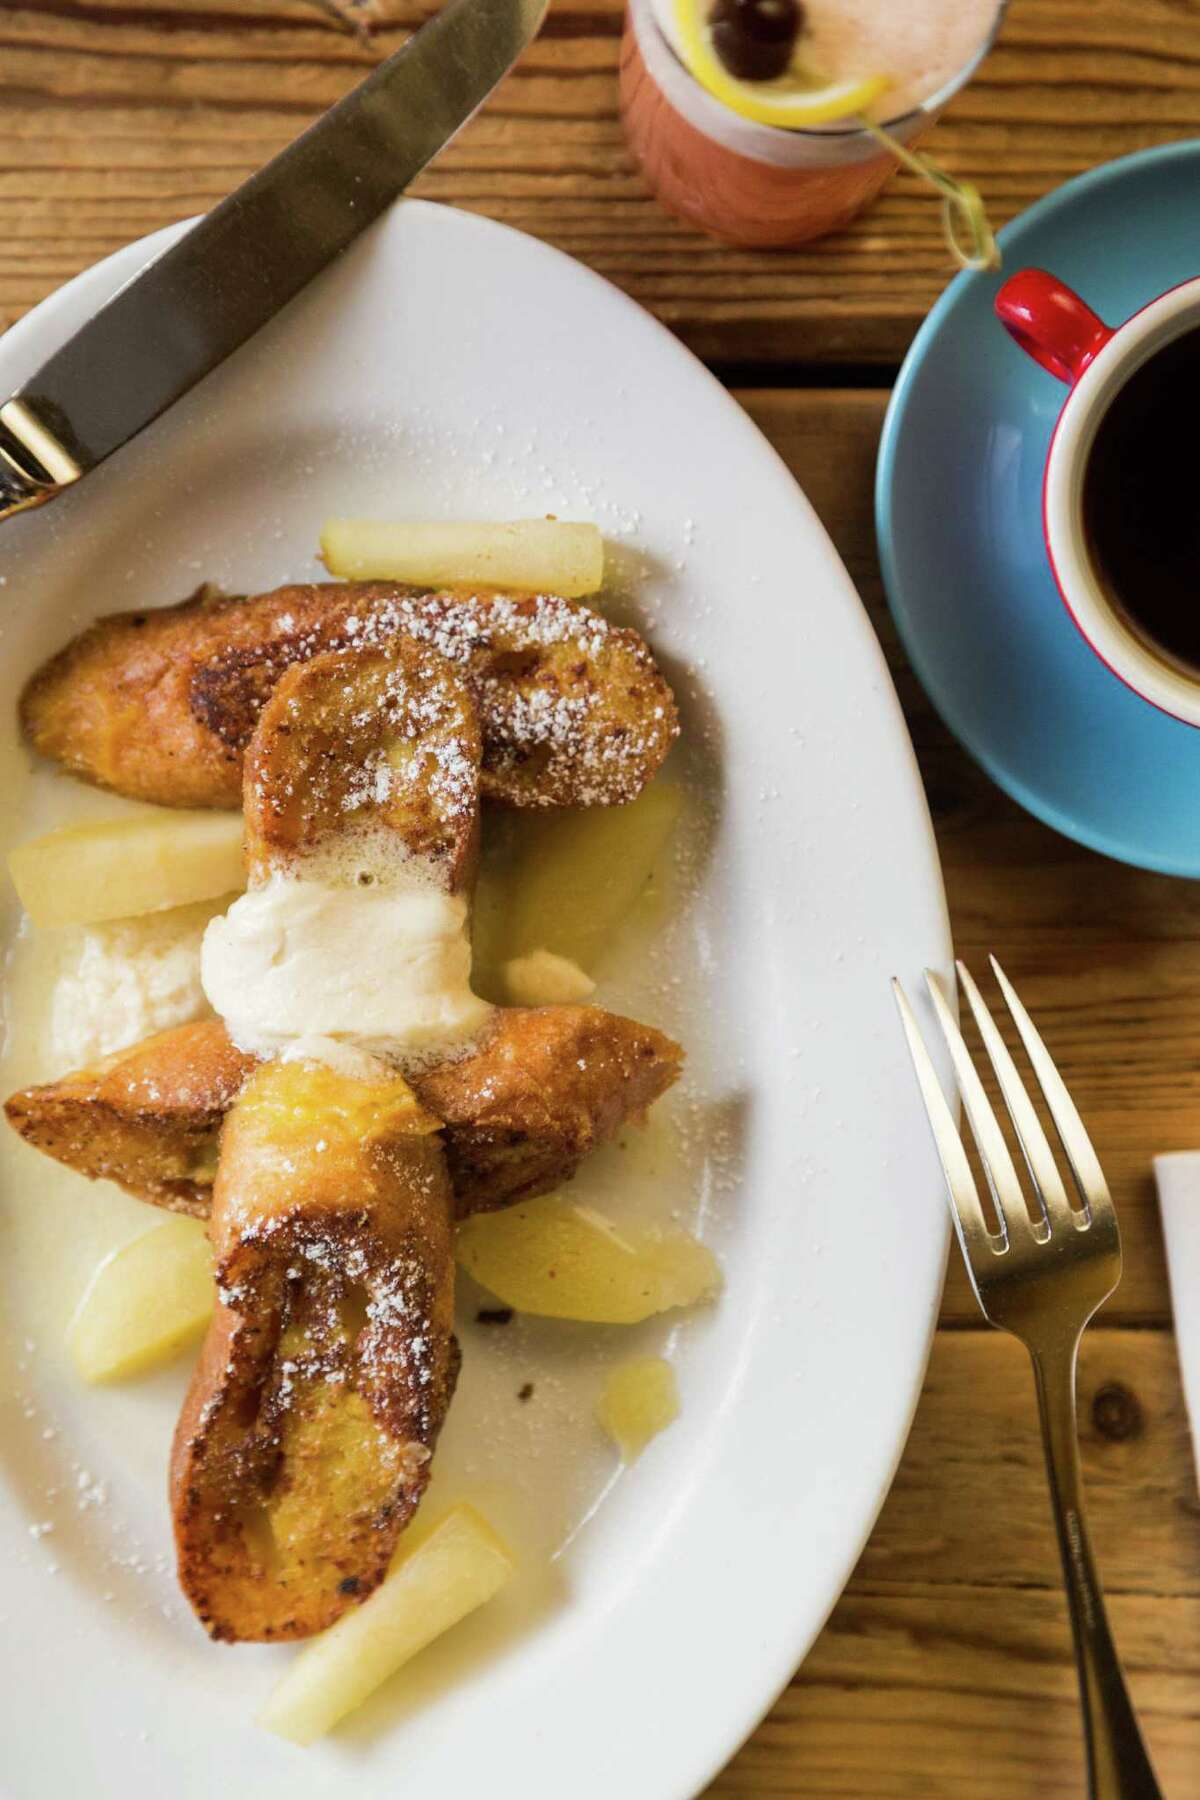 French toast with apples is a classic brunch favorite at Foreign Cinema in San Francisco.